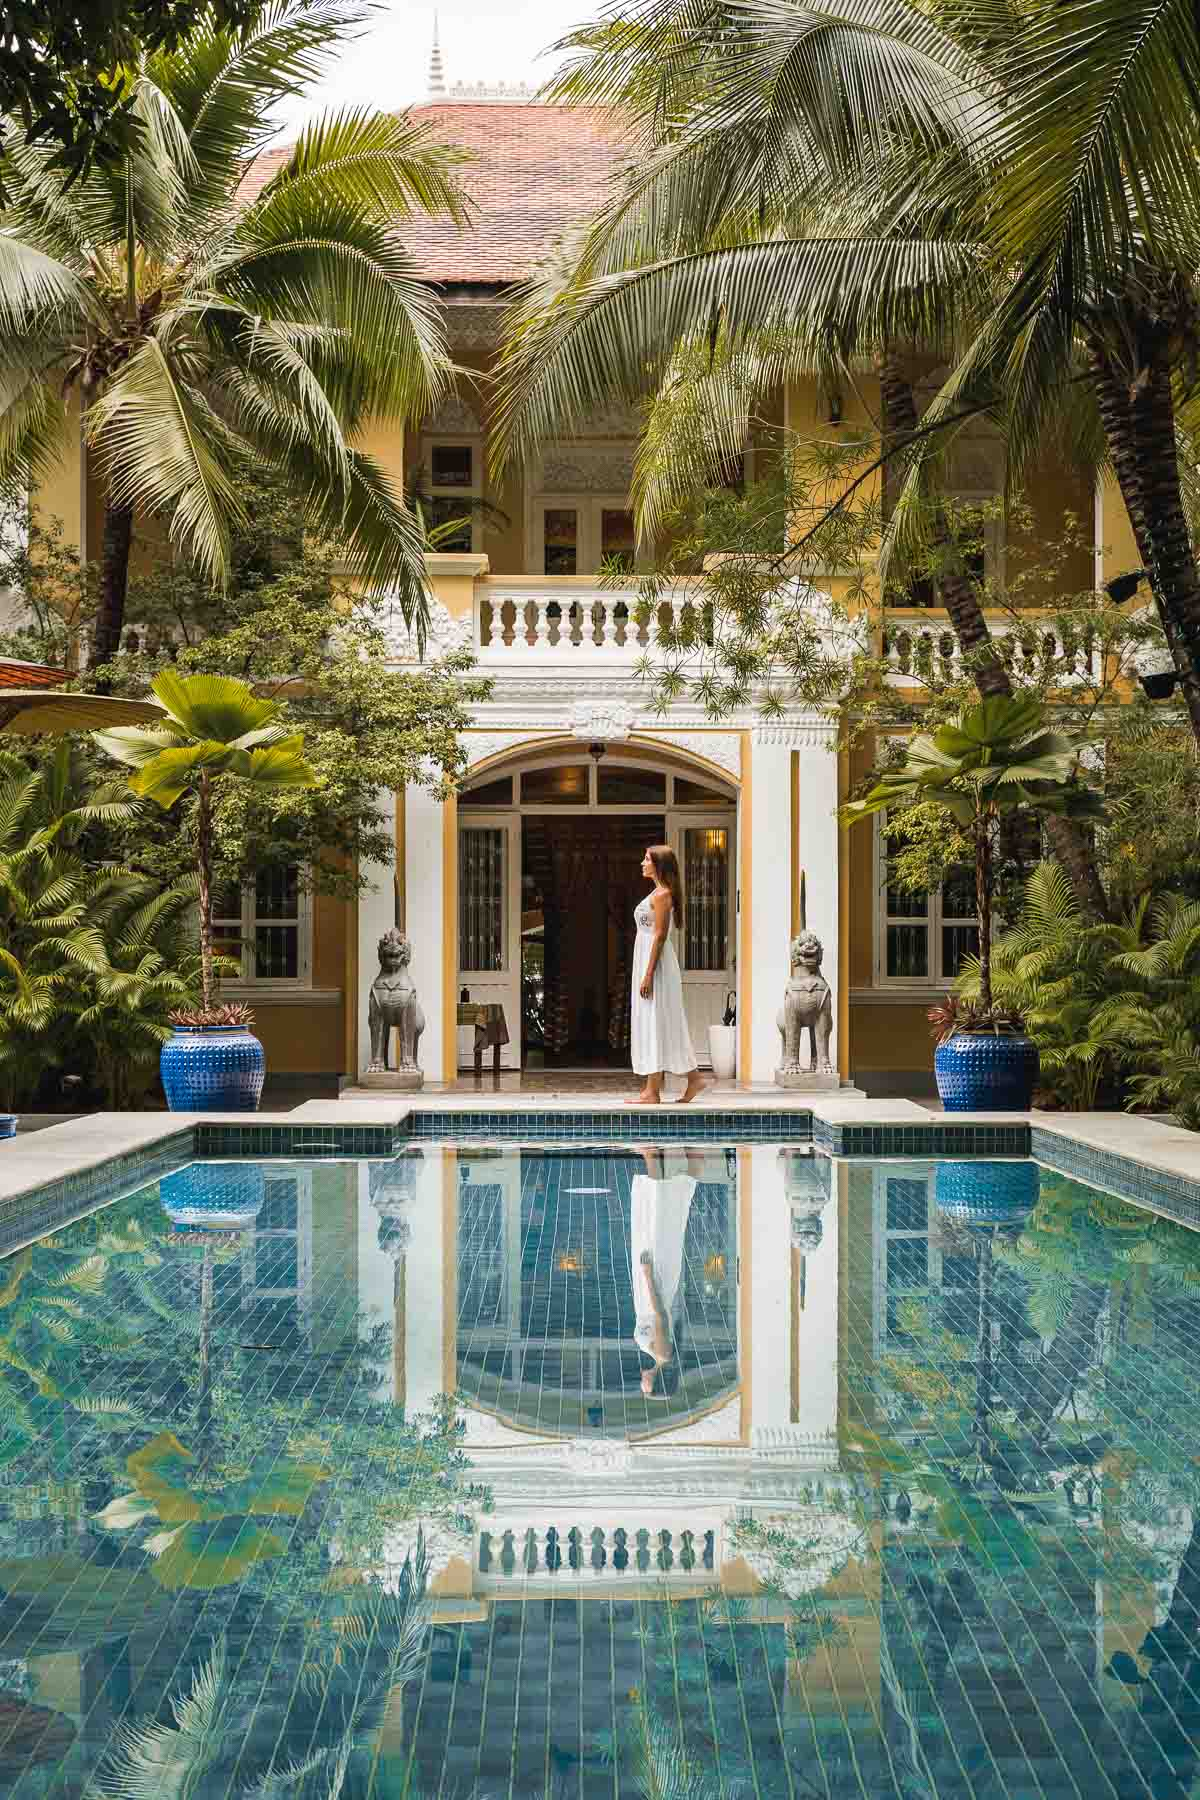 Girl in a white dress standing in front of the Lush Pool at Pavilion Phnom Penh